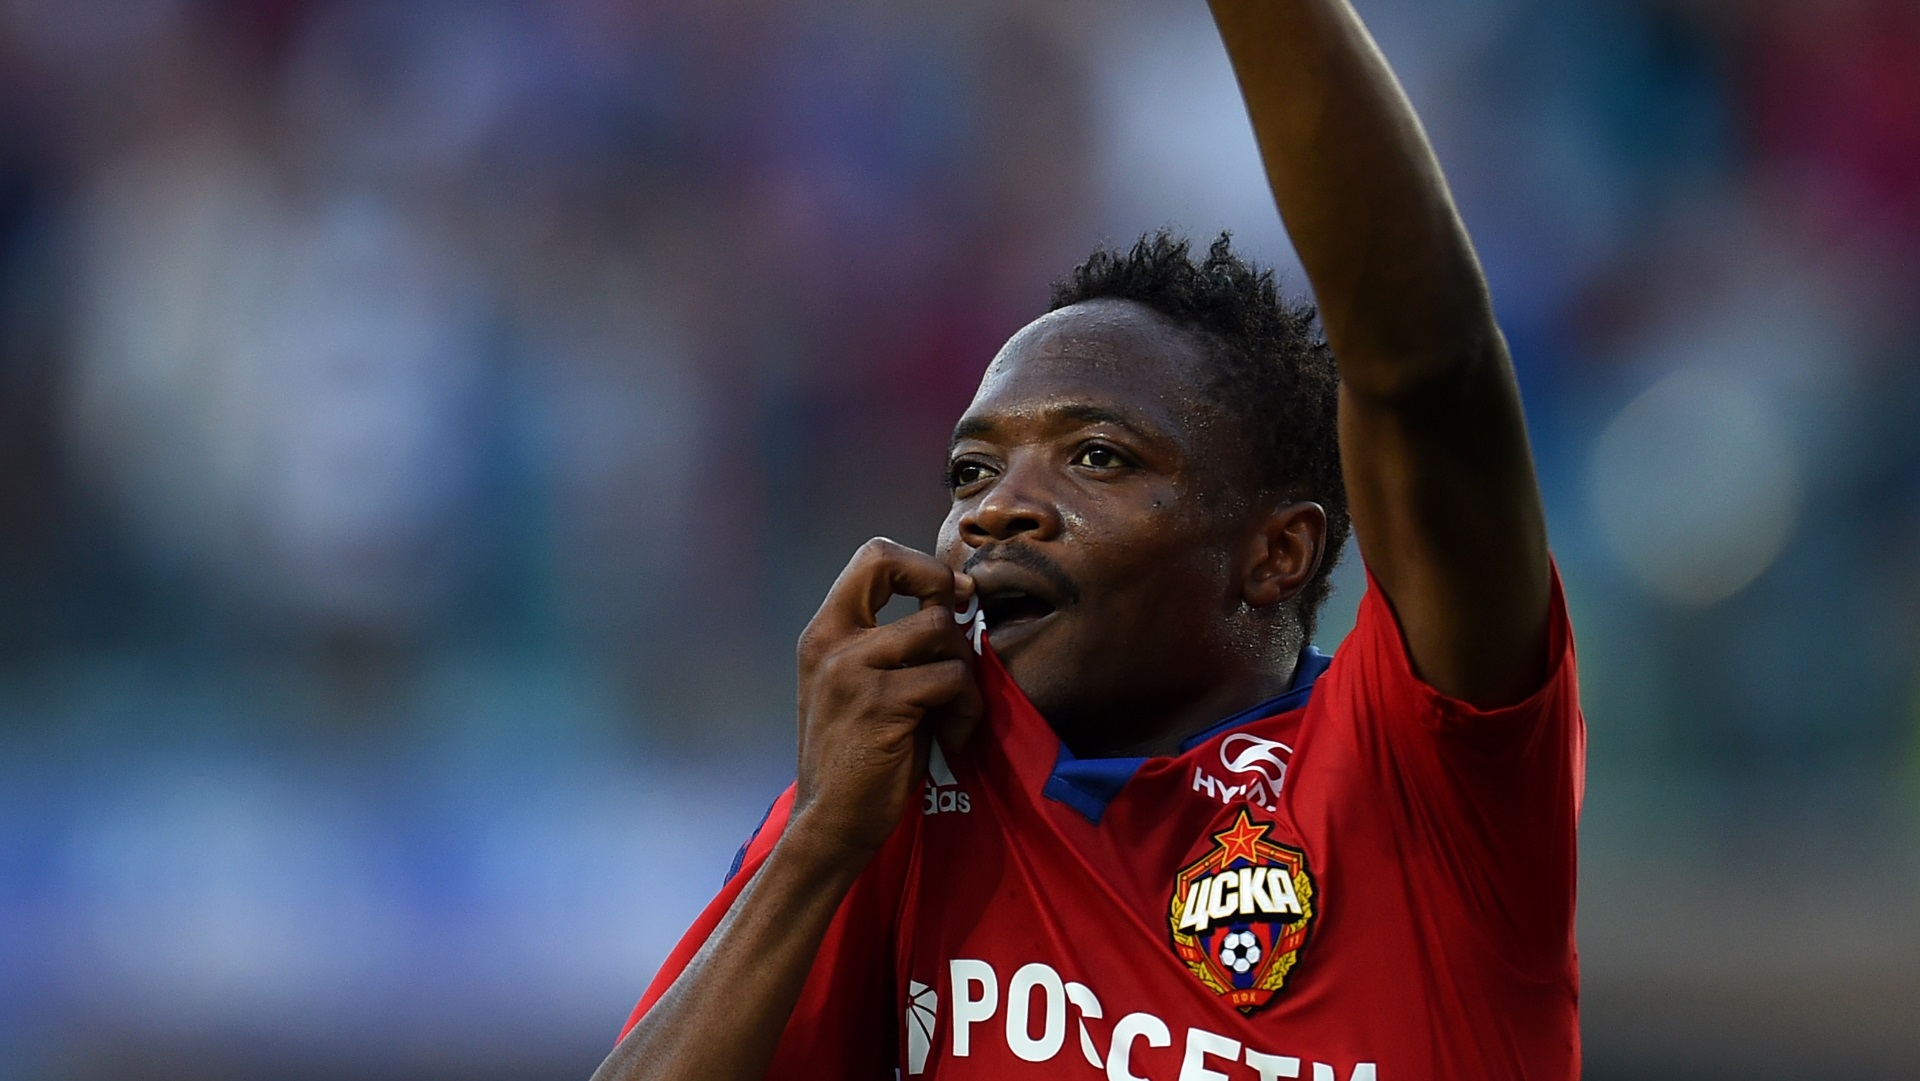 Ahmed Musa says he's happy back in CSKA Moscow